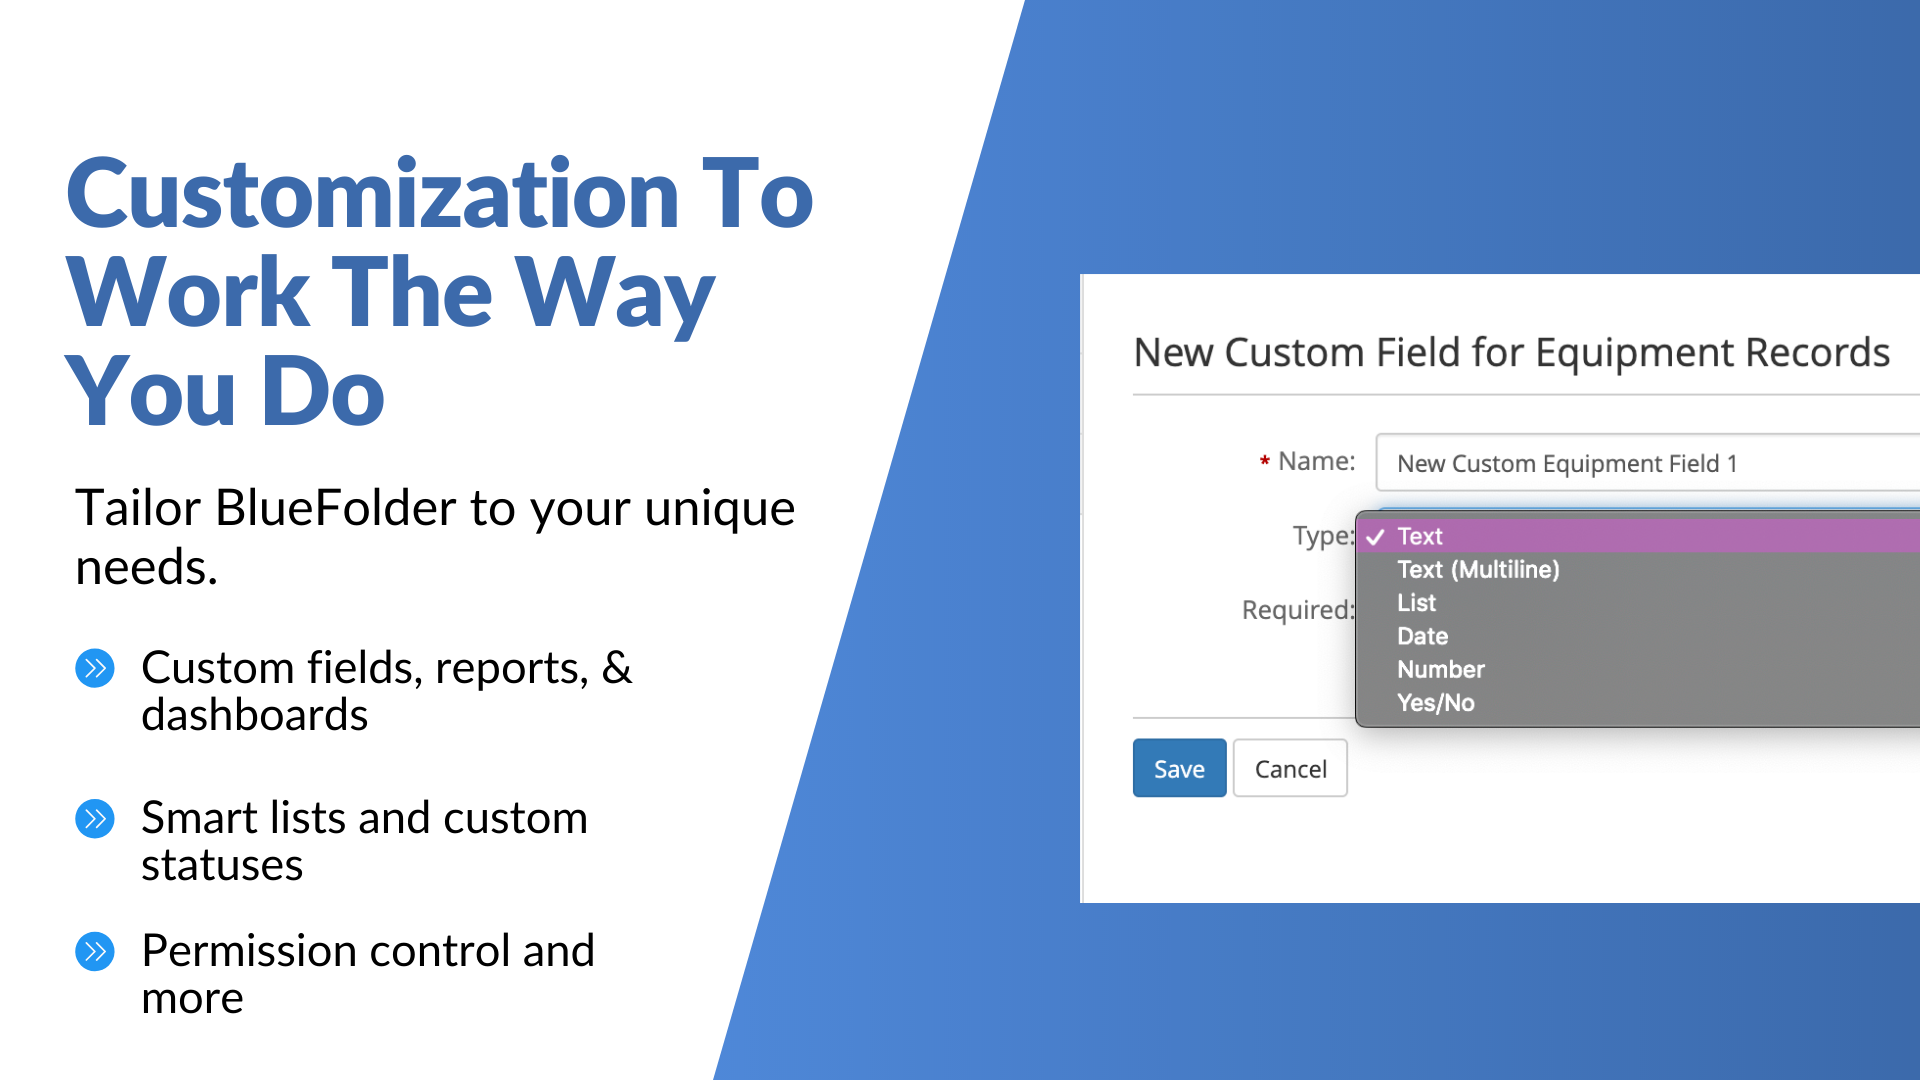 Customize BlueFolder to work the way you do with custom fields, reports, and dashboards, smart lists, and more.